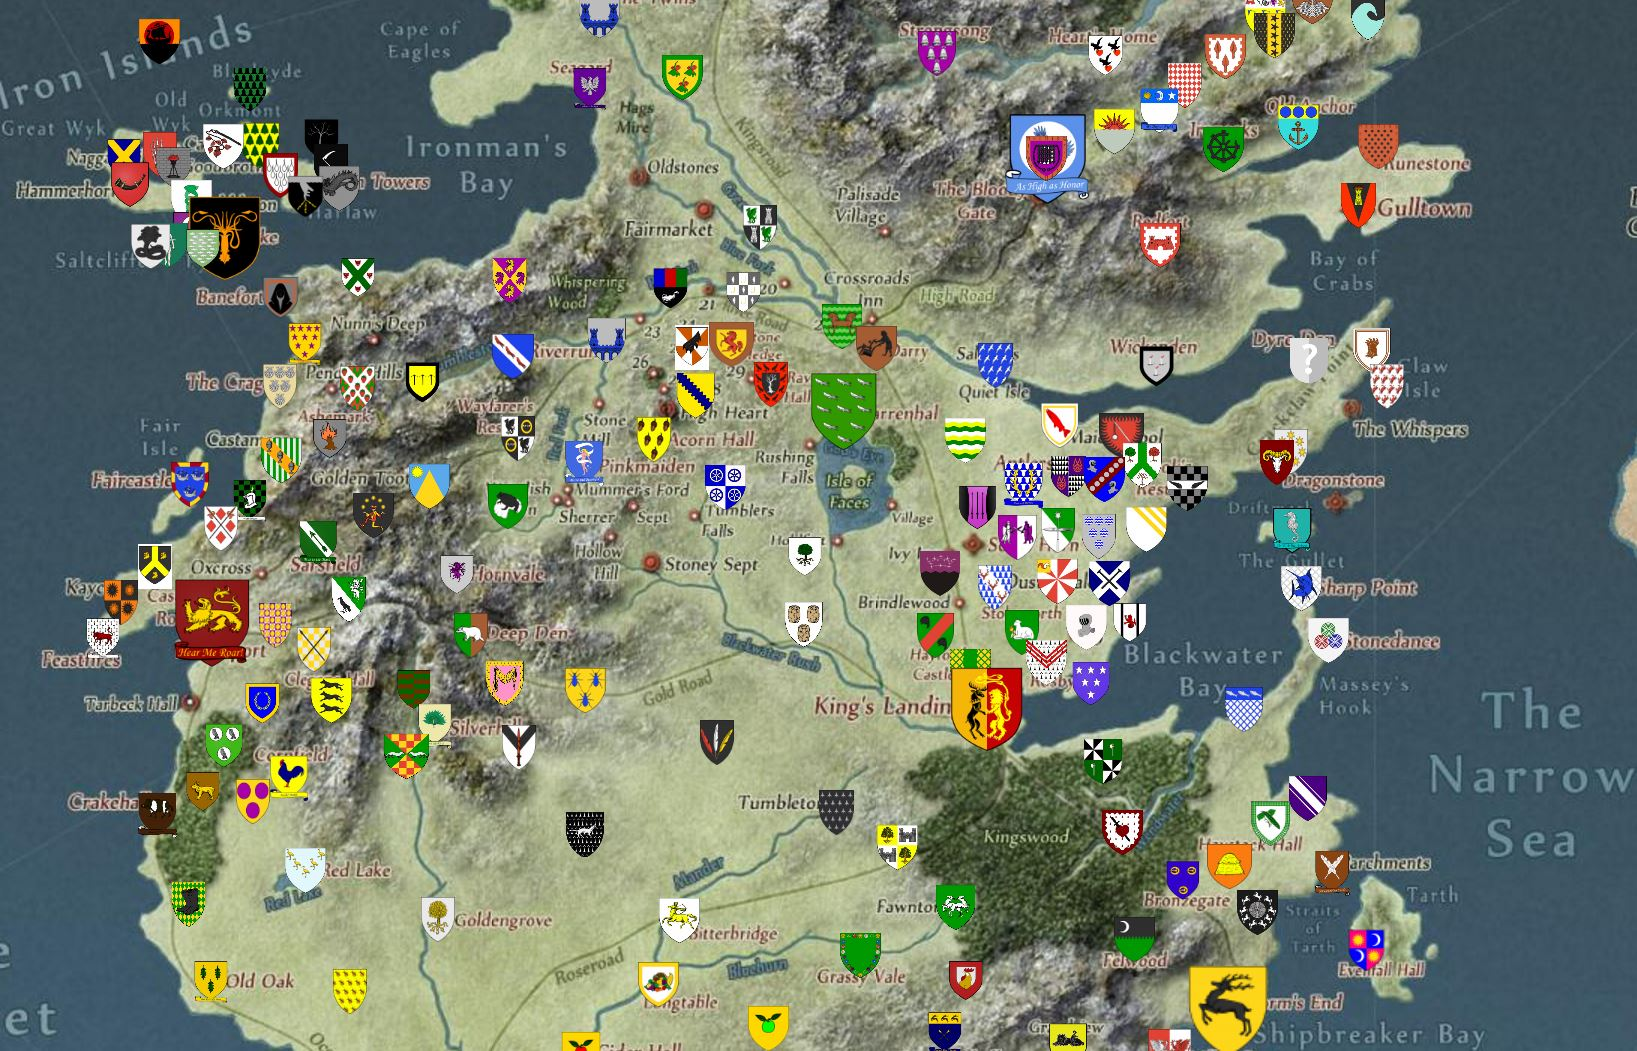 portland google maps with Interactive Map Of Game Of Thr on Image gallery likewise Citymap moreover Interactive Map Of Game Of Thr additionally North Carolina East Coast Map additionally 112155397.